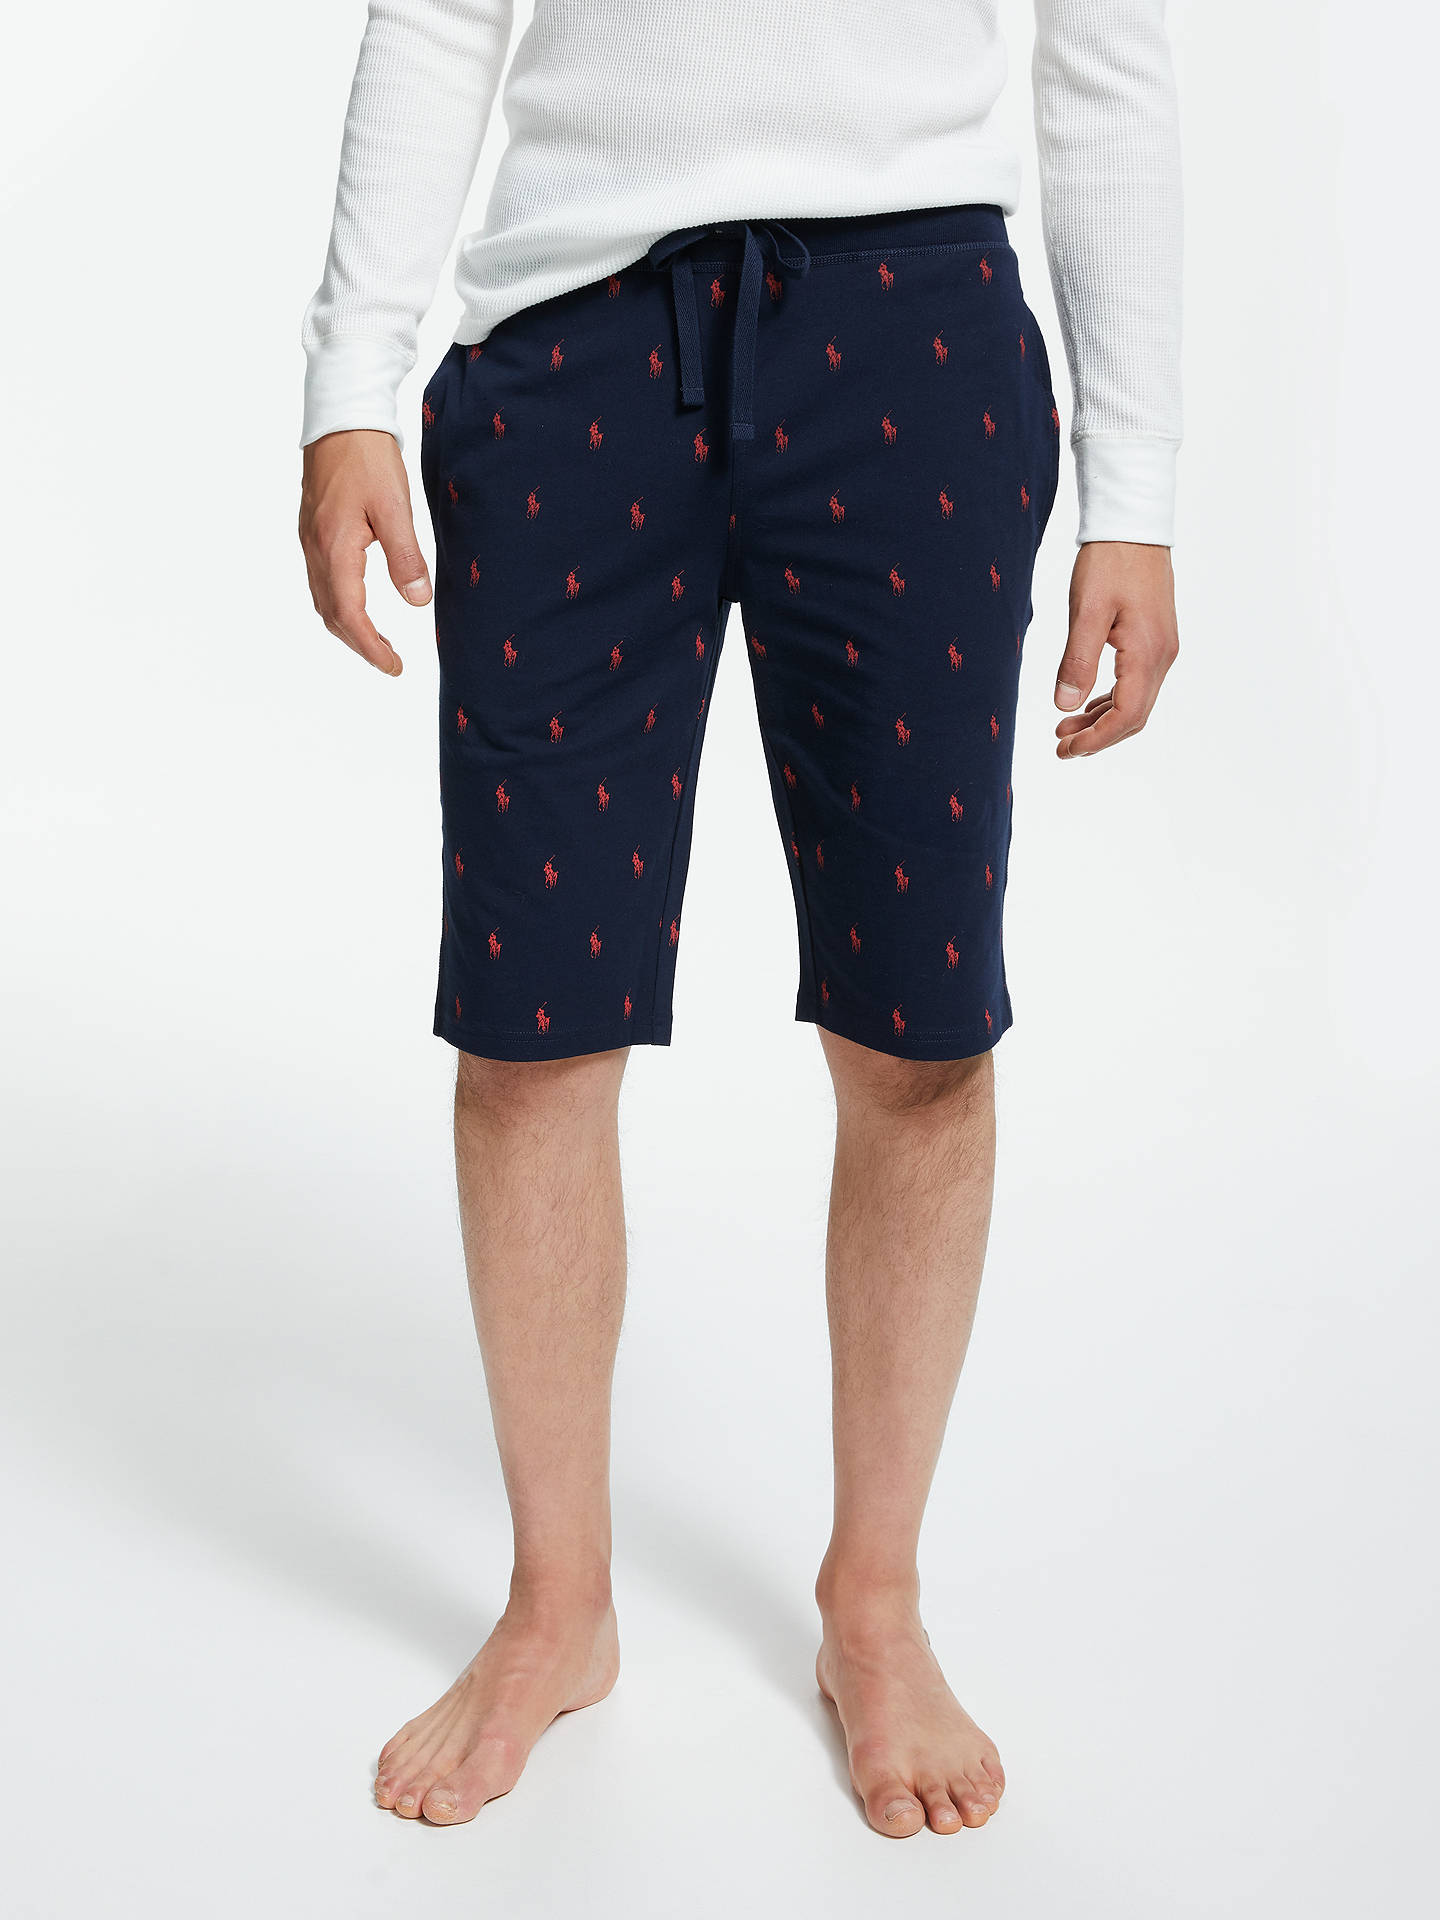 Buy Polo Ralph Lauren Pony Print Lounge Shorts, Navy/Red, S Online at johnlewis.com